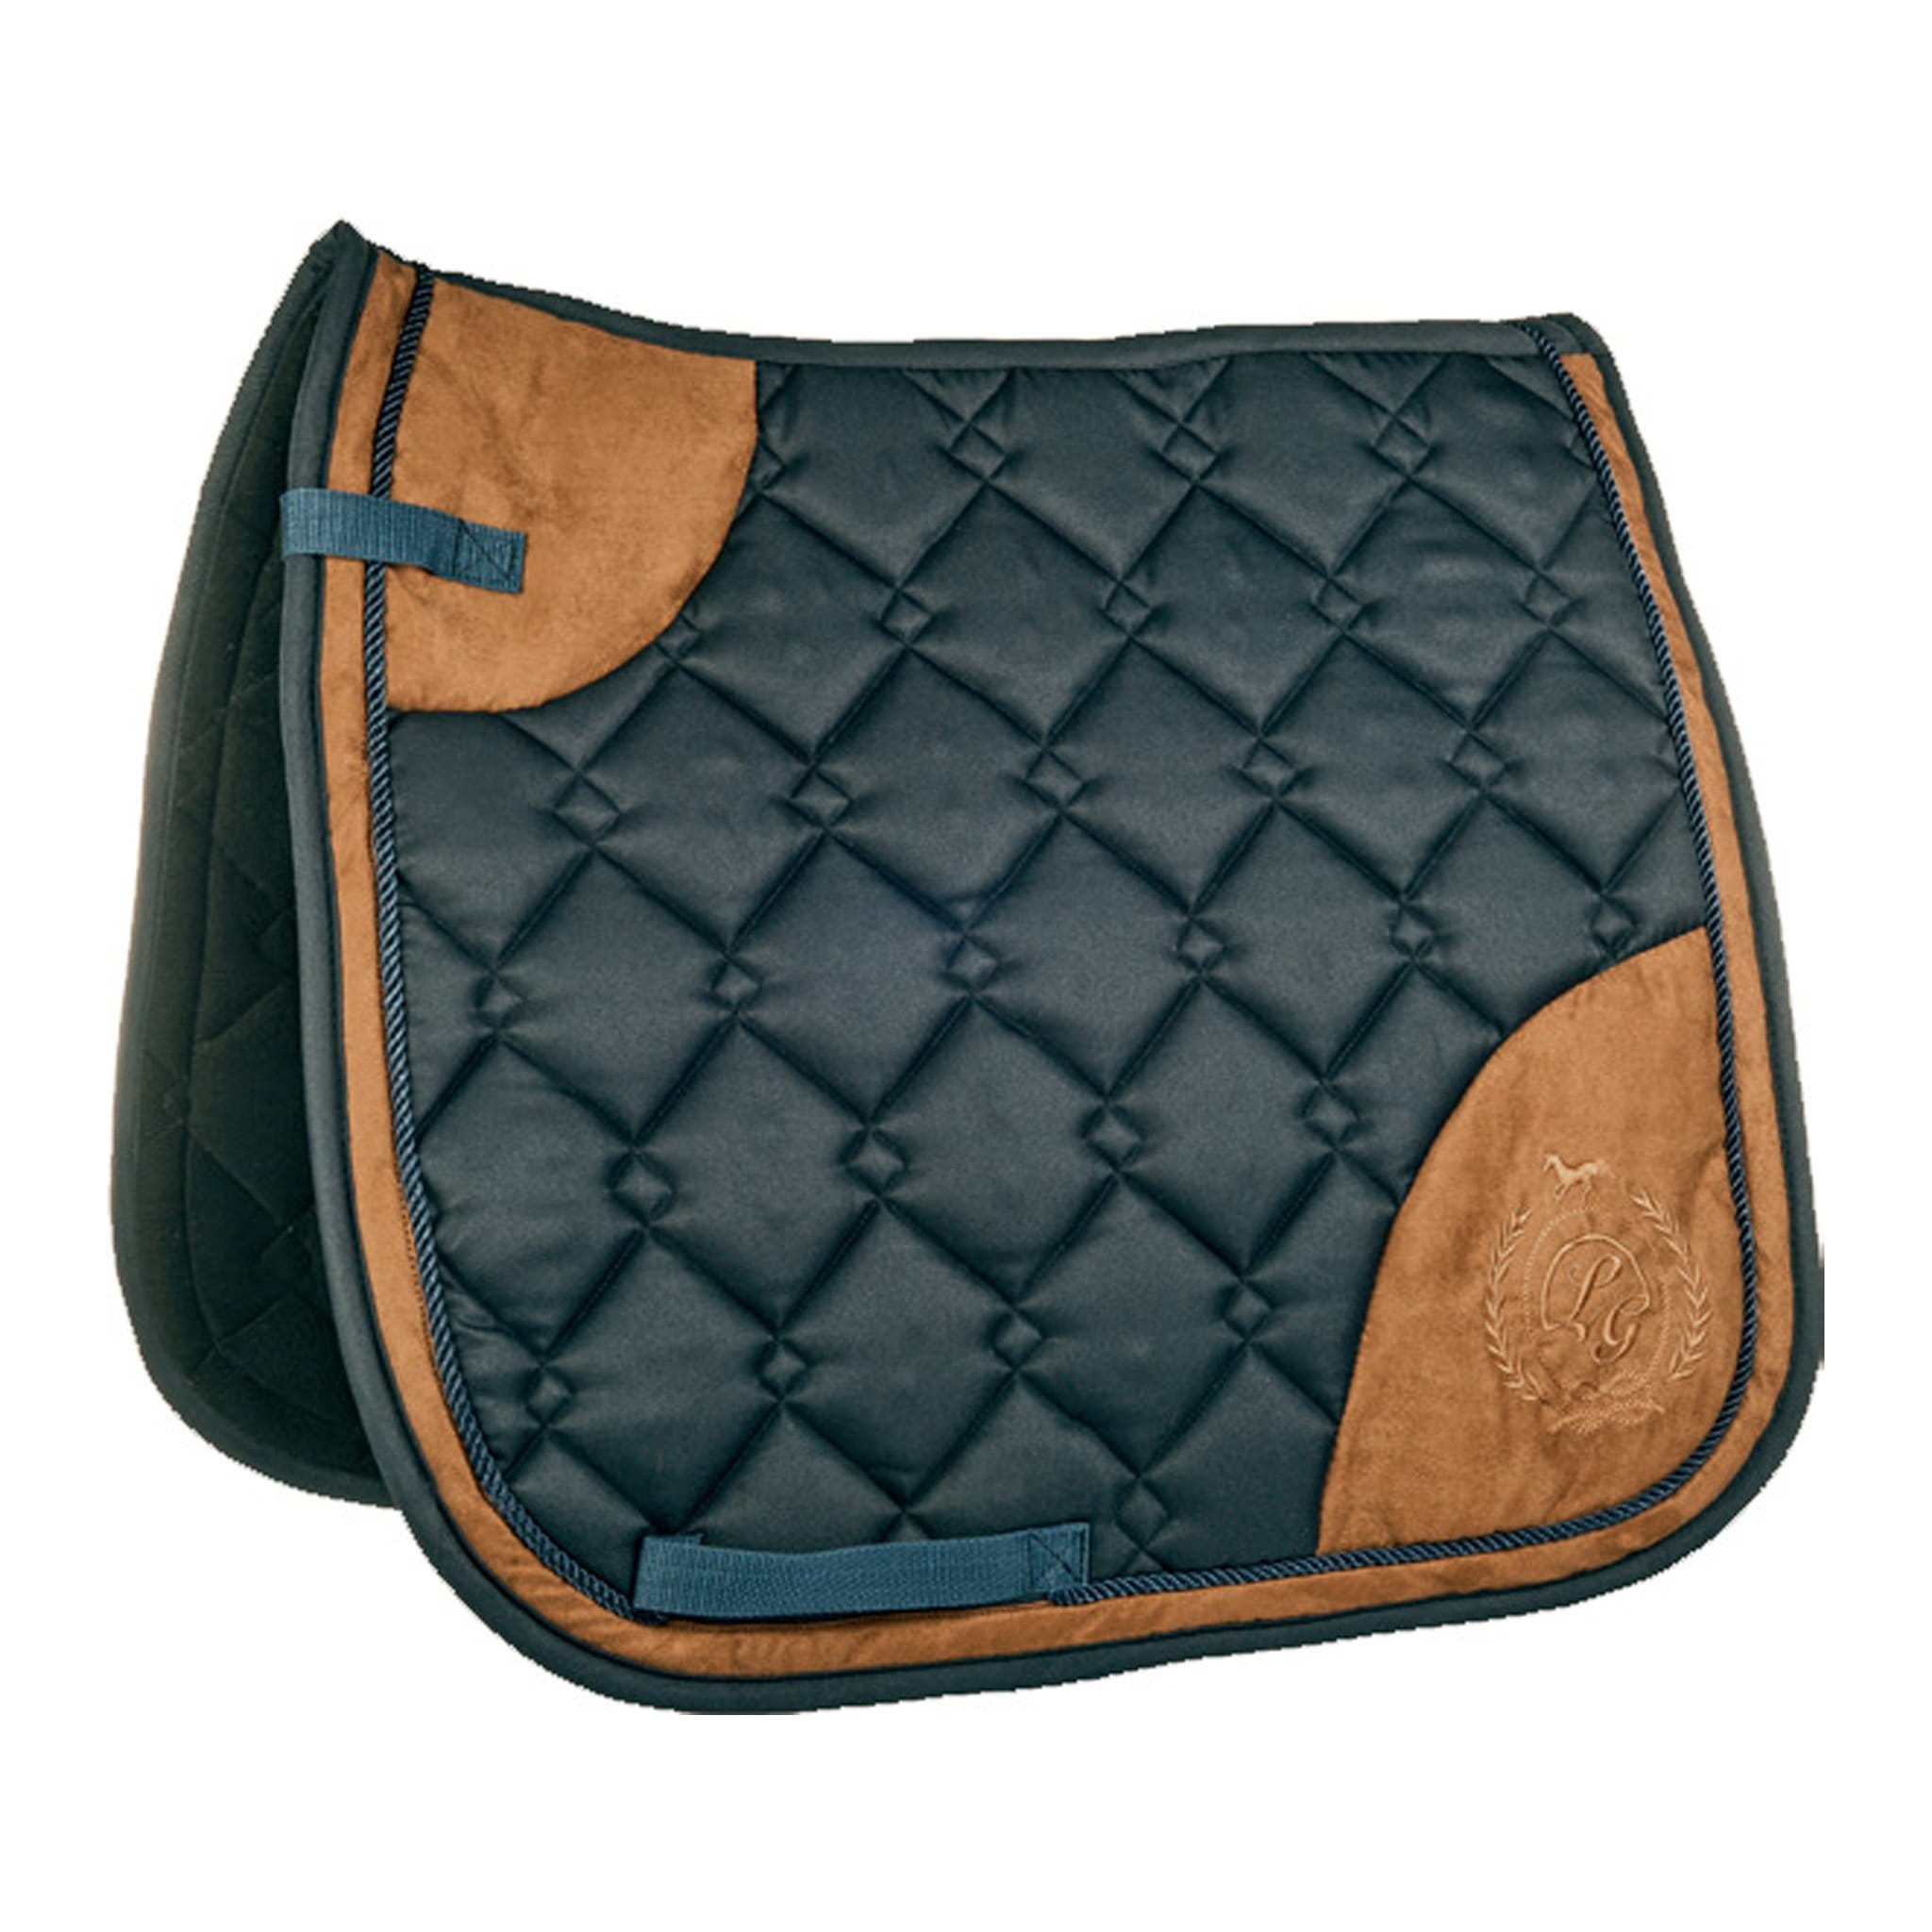 HKM Lauria Garrelli Champagne Saddle Pad 4998 Deep Blue